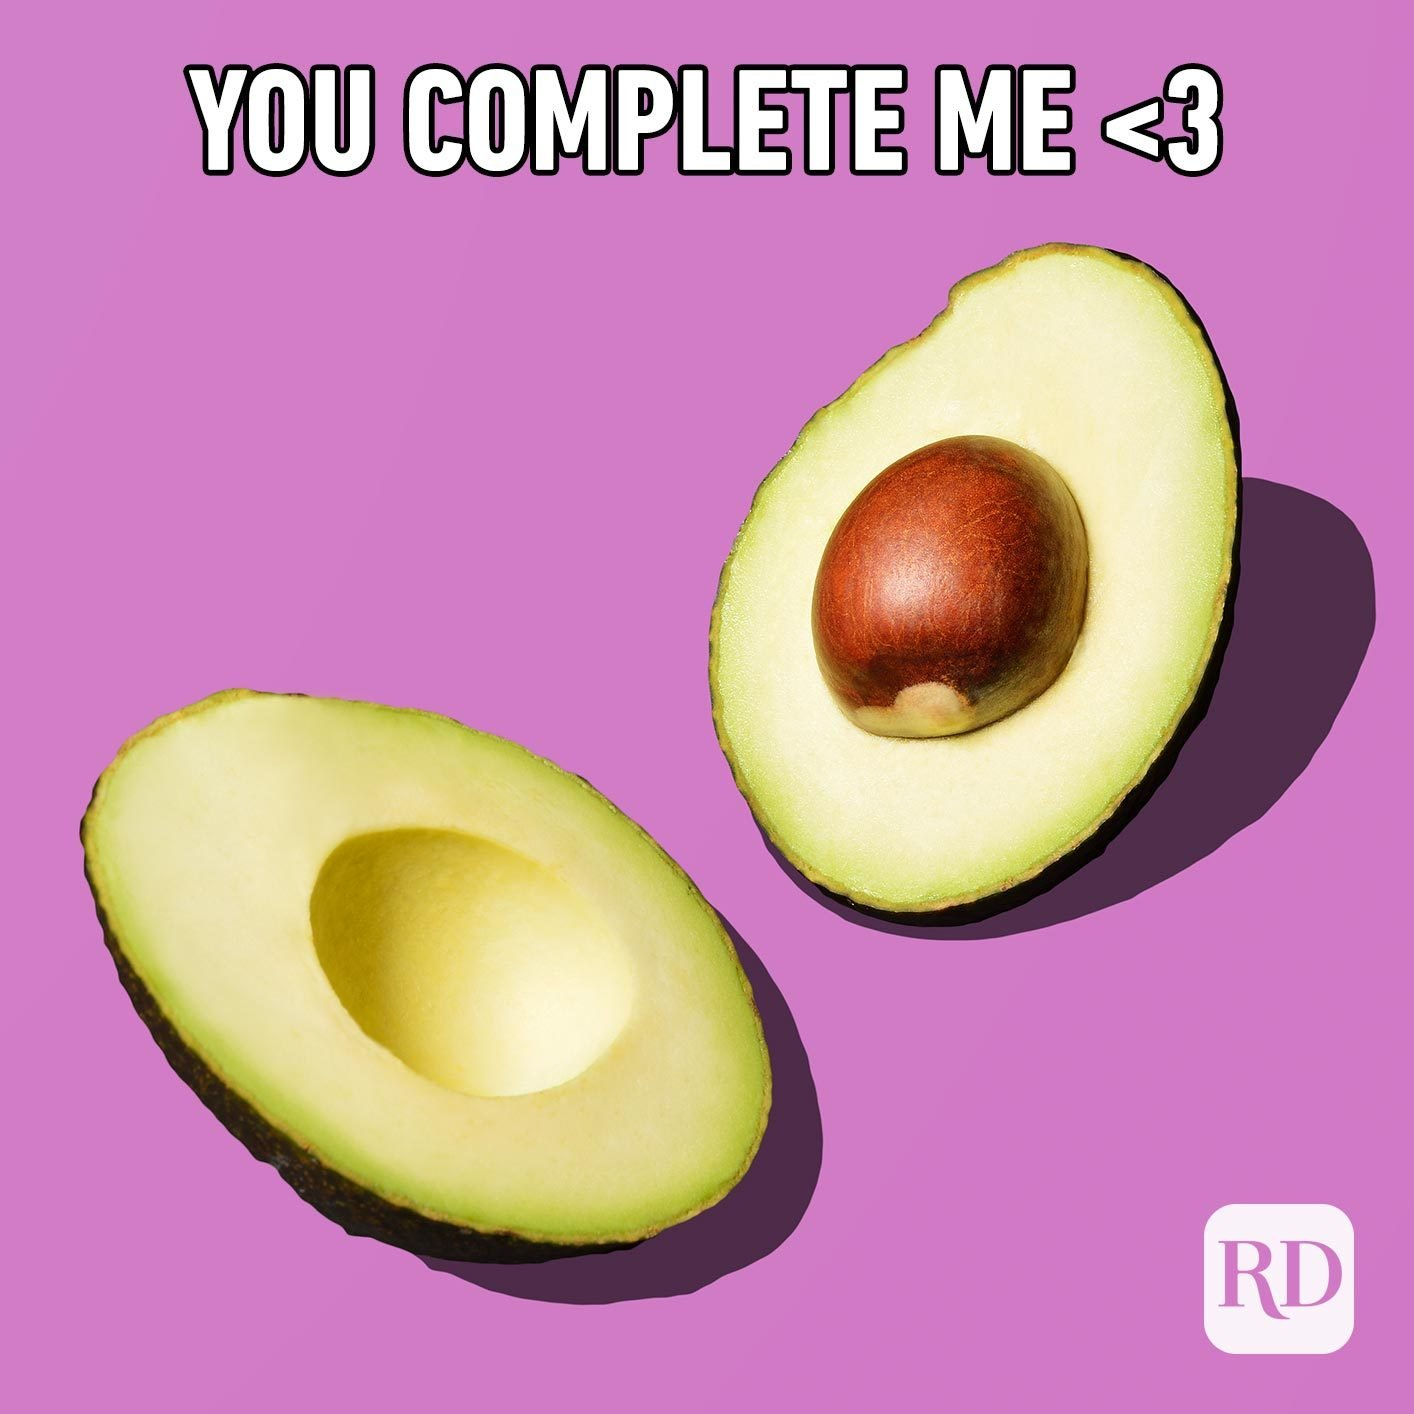 Avocado cut in half. Meme text: You complete me <3